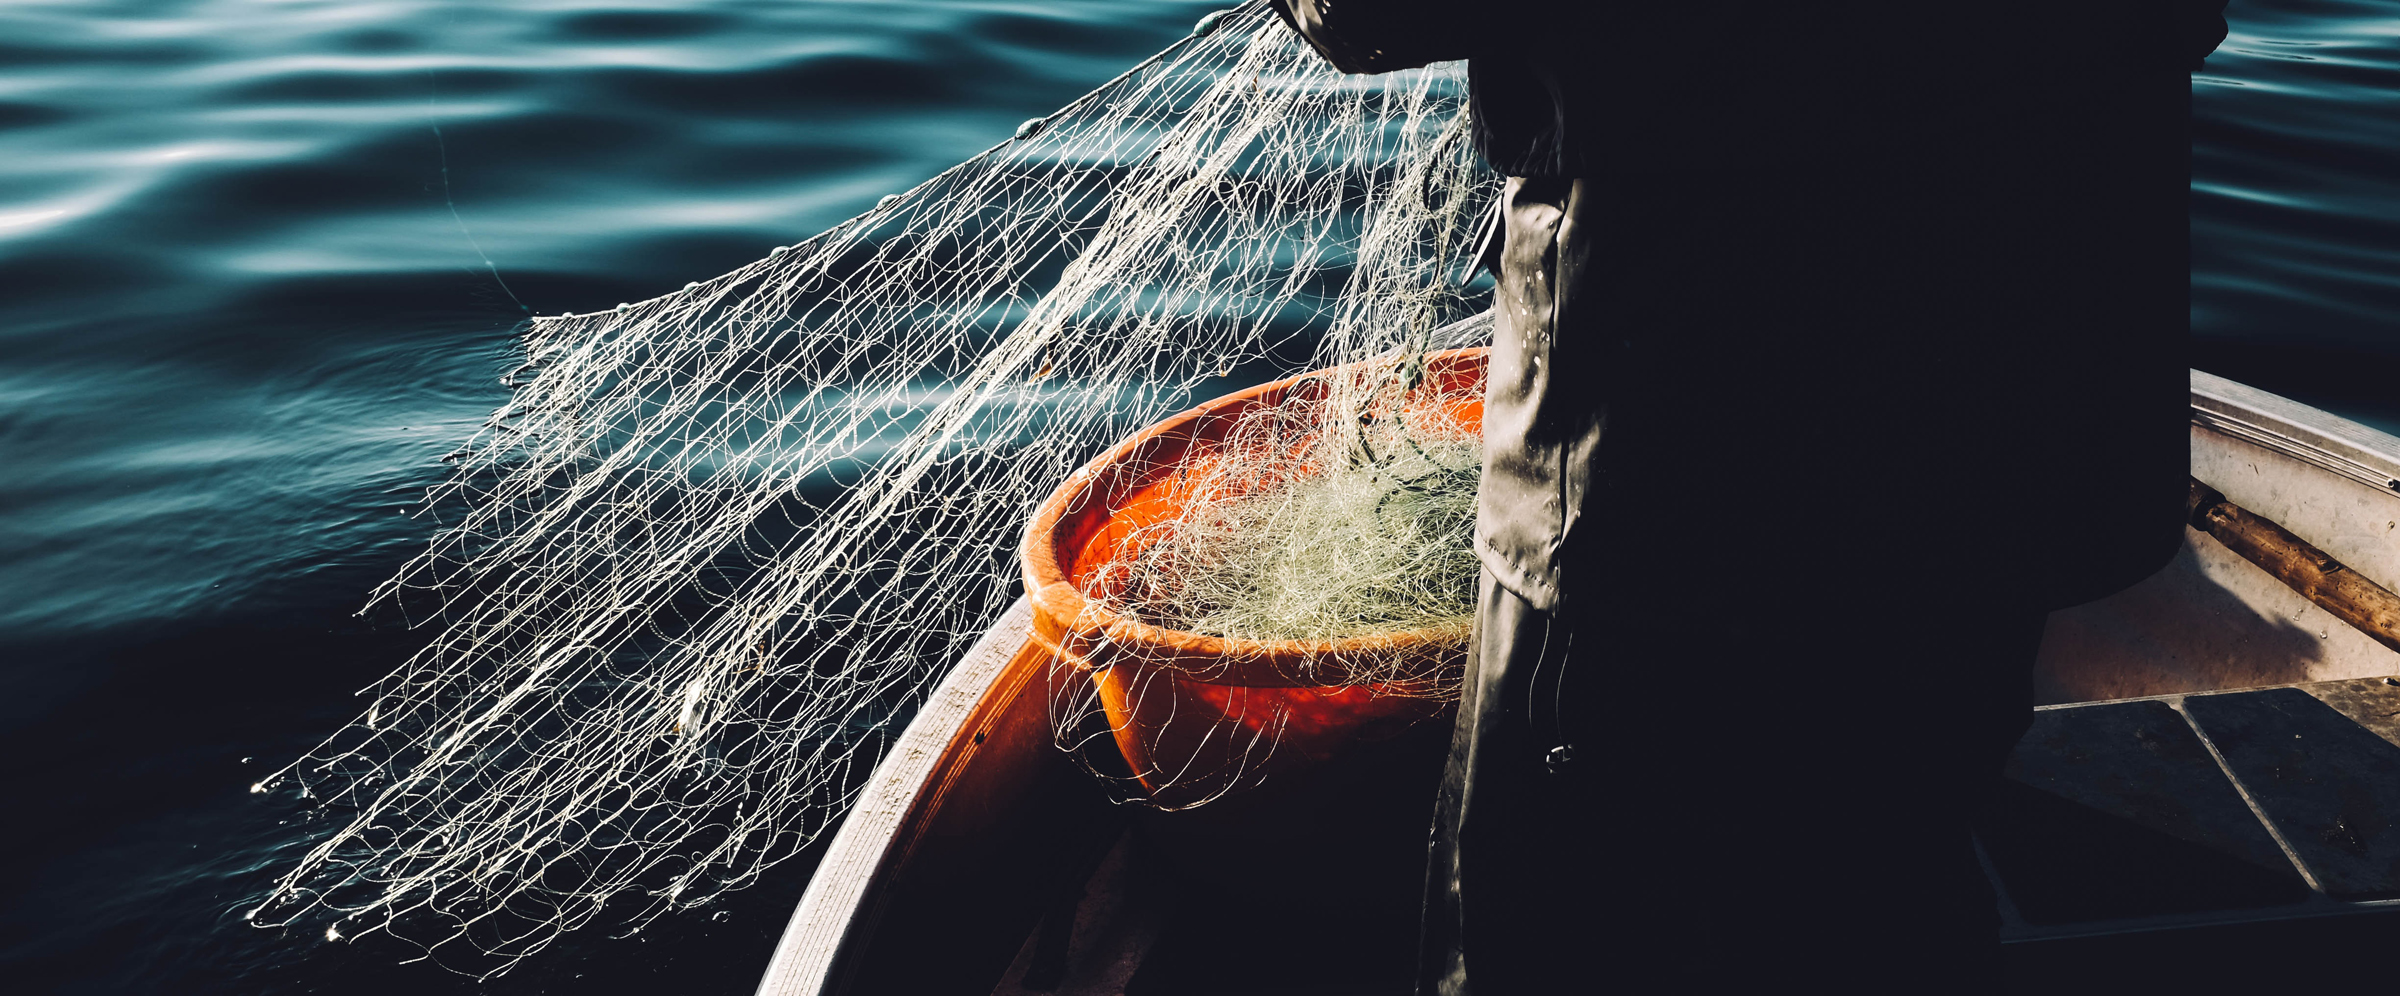 Image by Fredrik Öhlander: a fishing net being pulled from the sea into a large bucket on a boat.